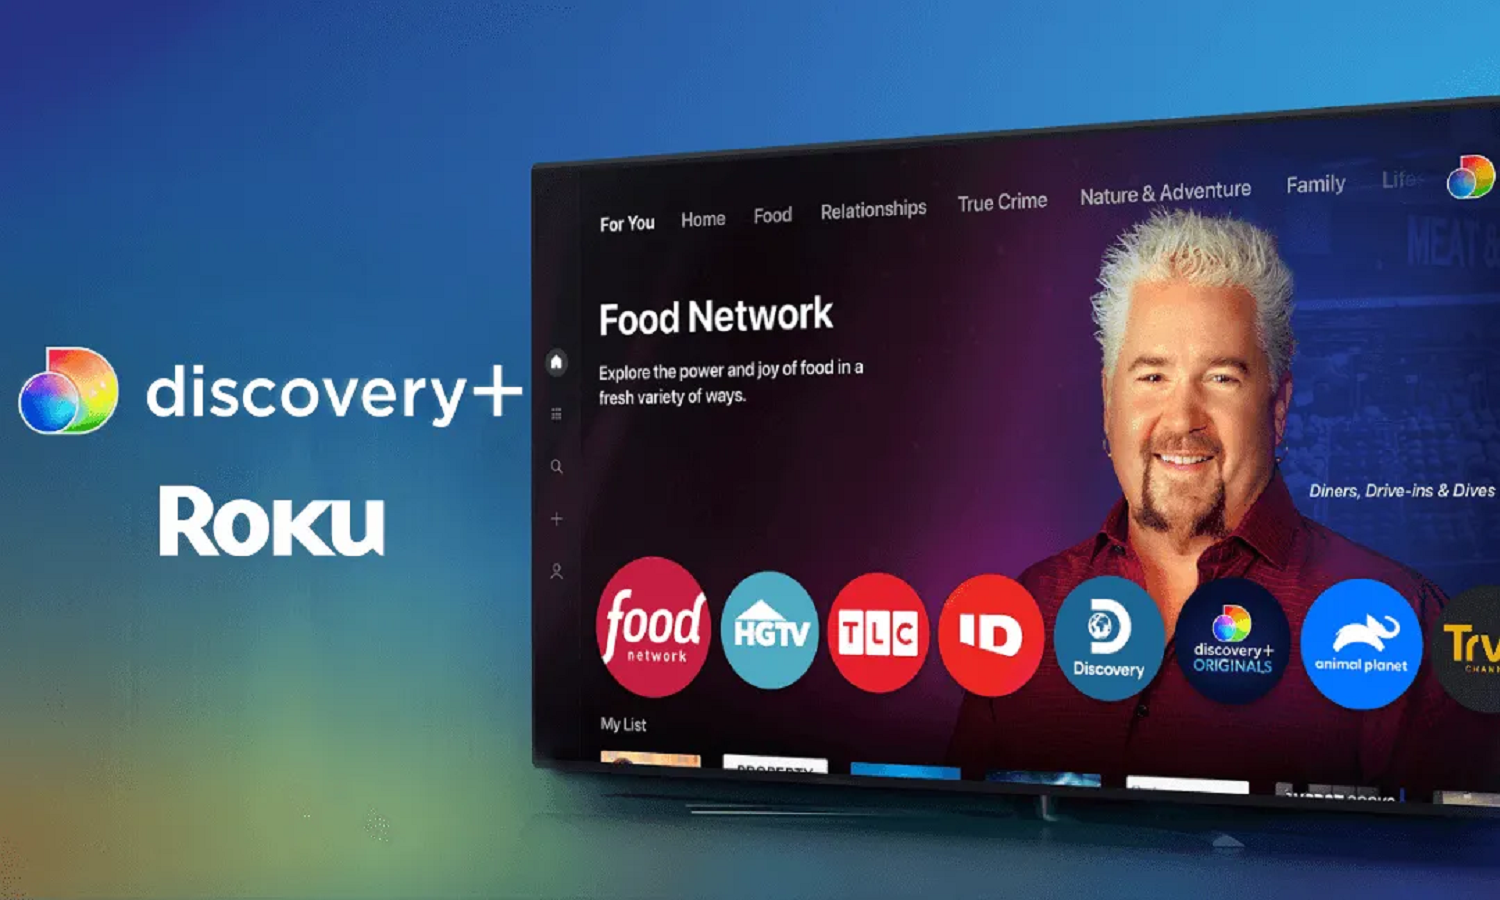 Lean How to Add & Watch Discovery Plus on Roku